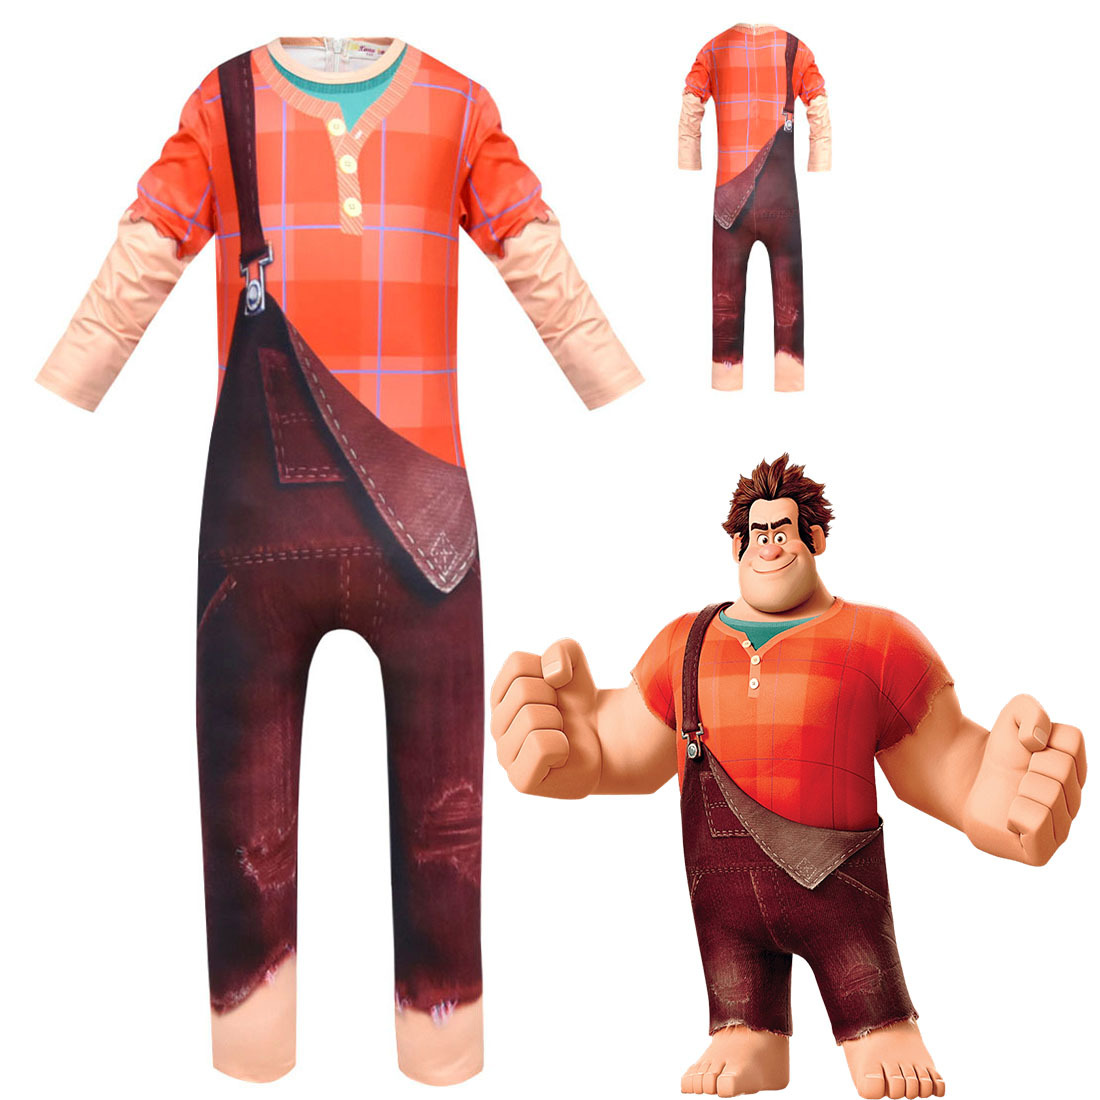 kids spiky hair Wreck-It Ralph red clothes Boy Cosplay hamfist Clothes Halloween Ralph Costume Funny Kid Clothing Fix-It Felix